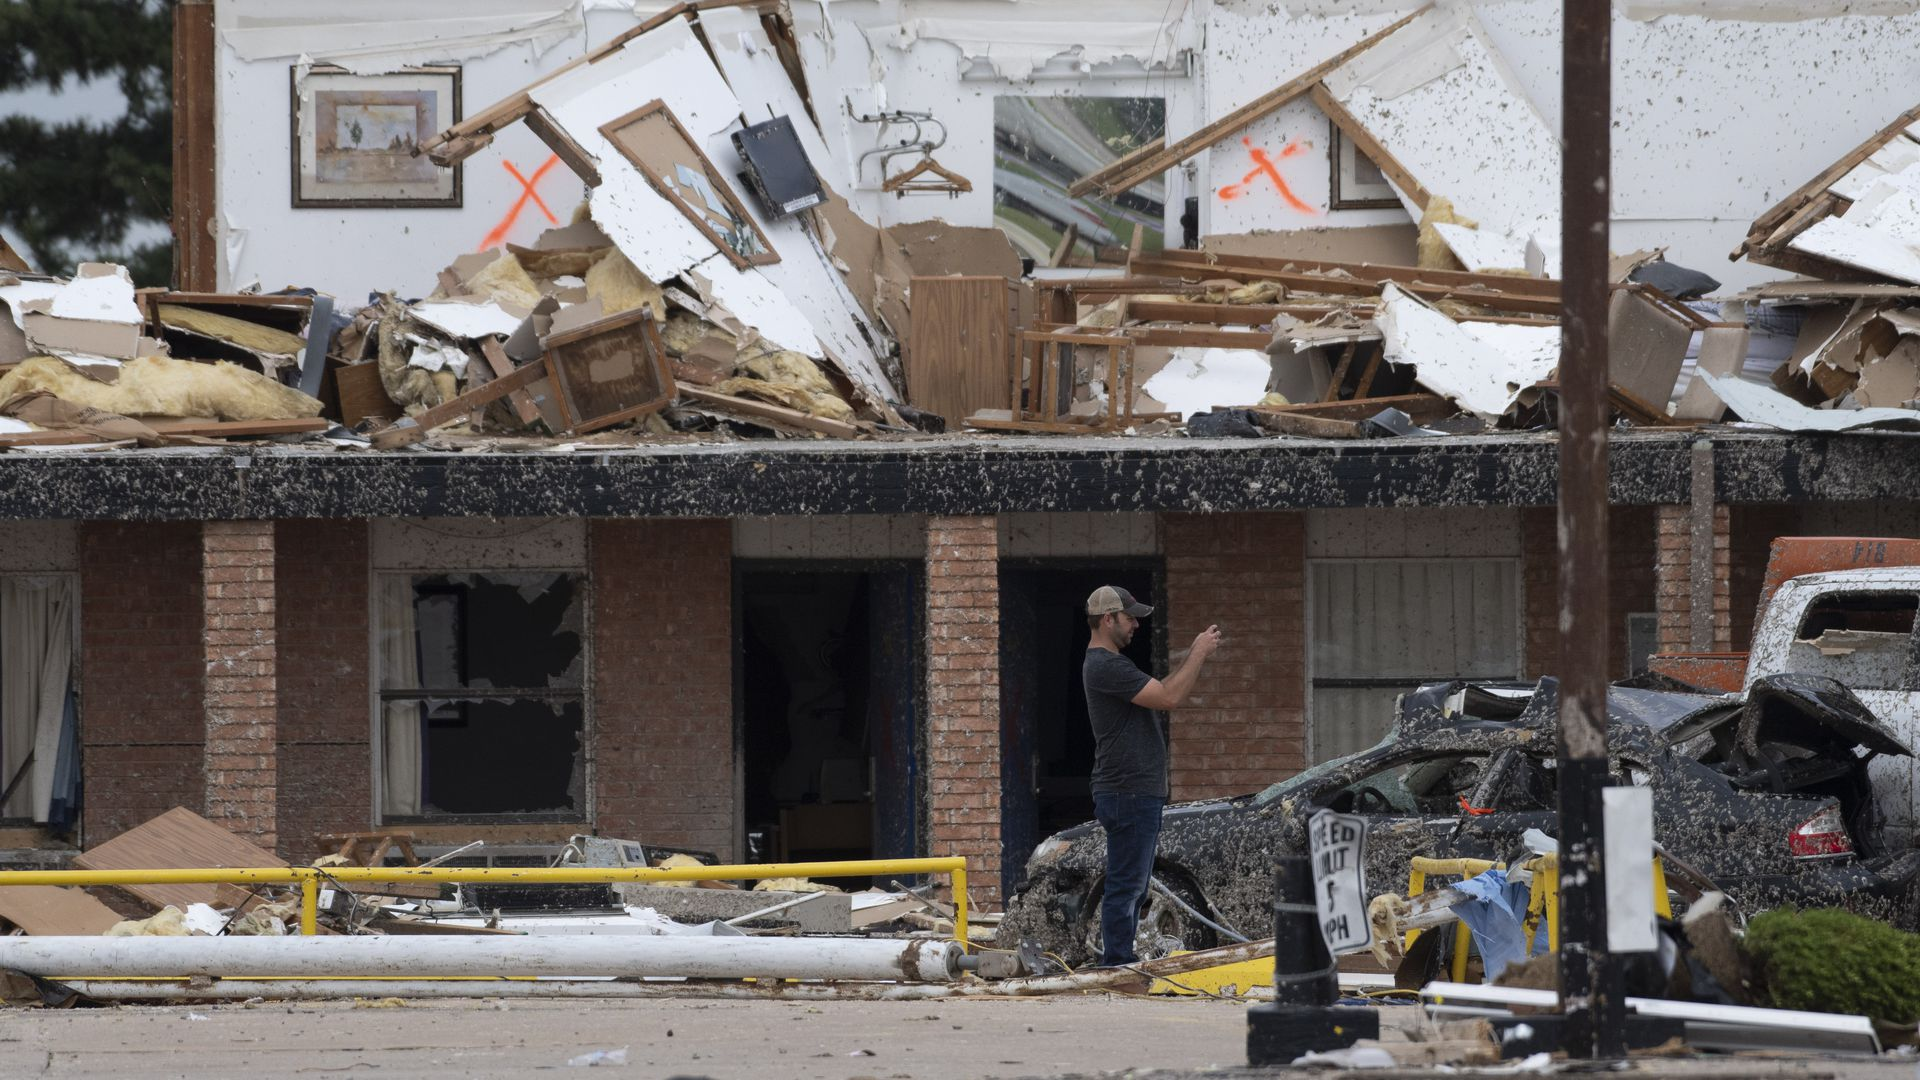 A rescue worker takes photos of the American Value Budget Inn May 26, 2019 in El Reno, Oklahoma.